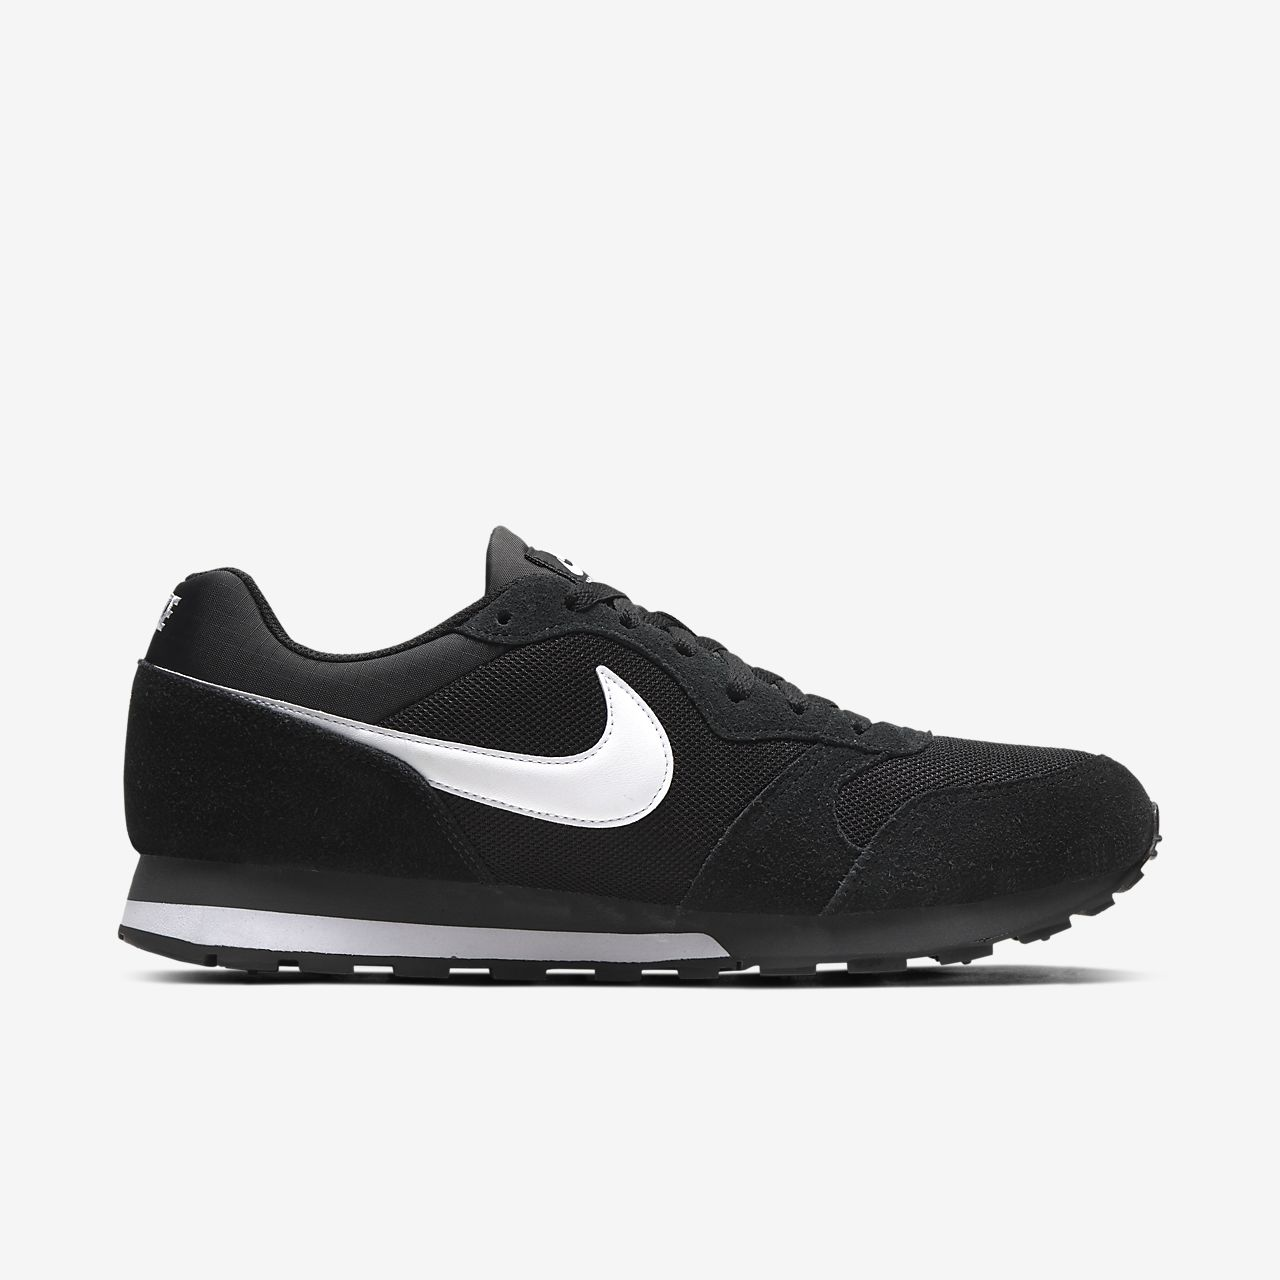 sports shoes bce2e f6713 ... Nike MD Runner 2 Herrenschuh